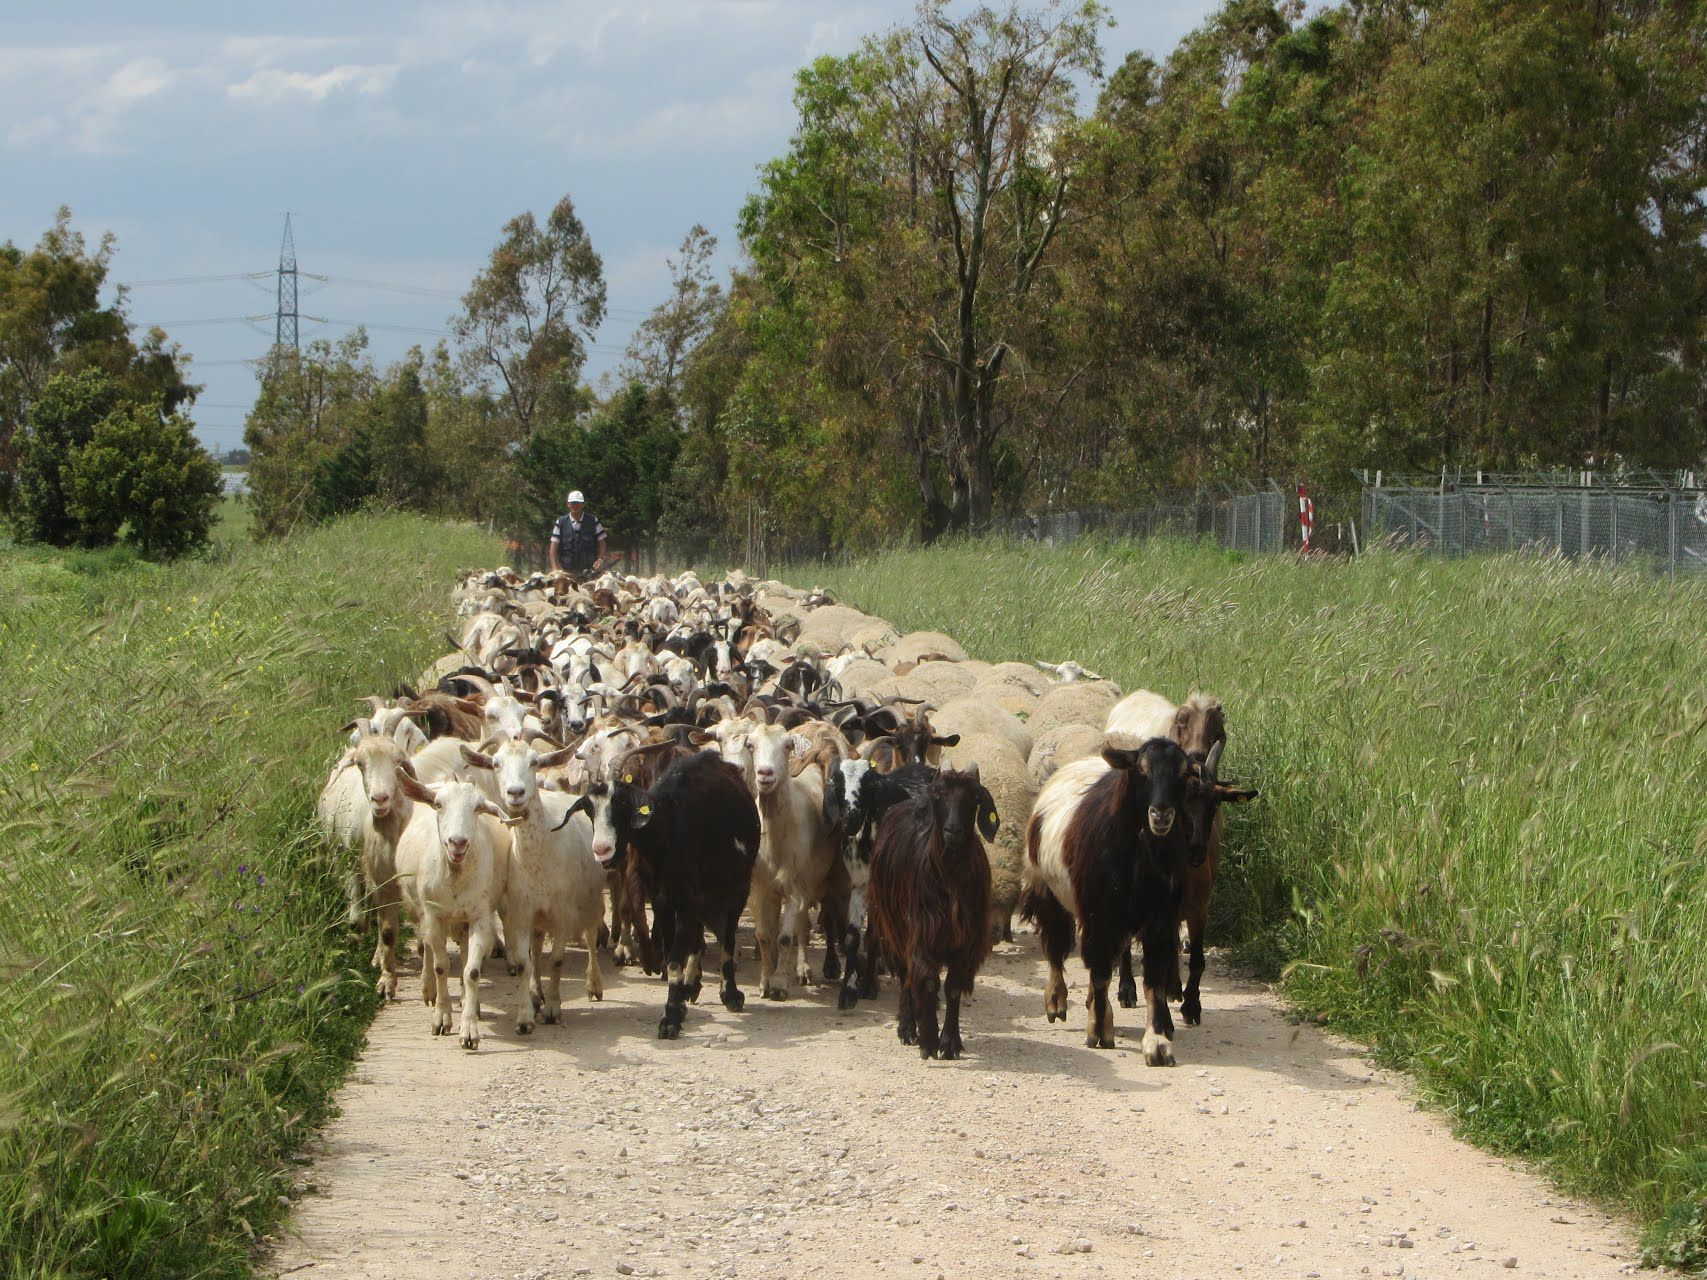 Rural traffic jam Happens quite frequently on this road Brindisi